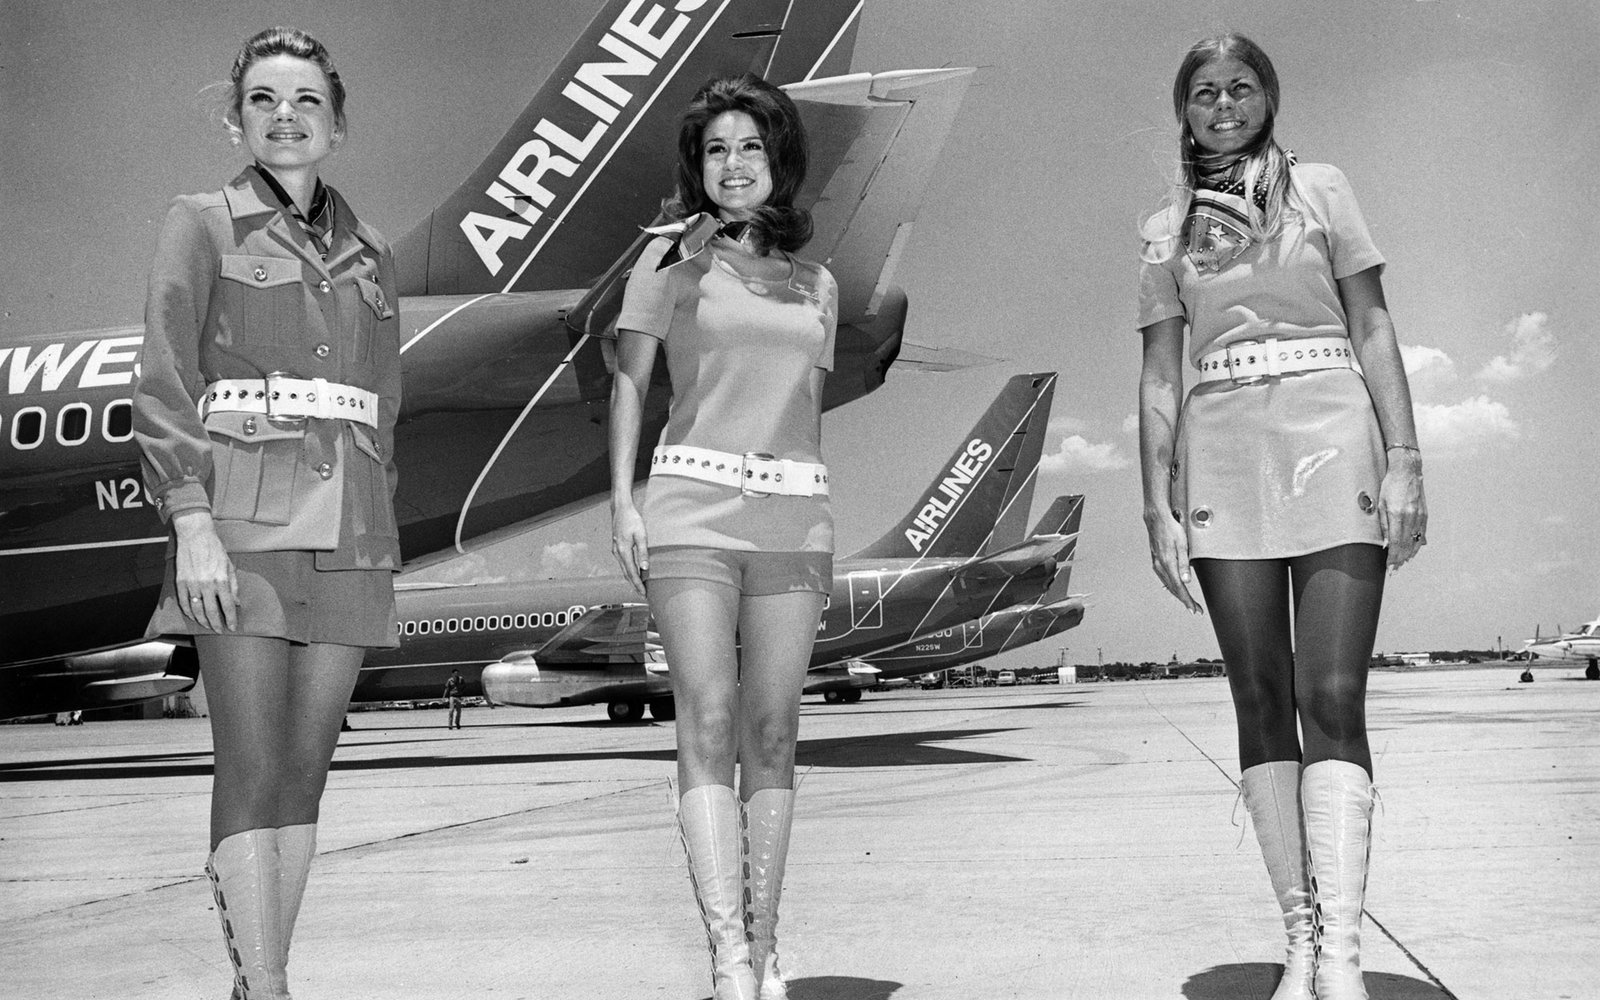 circa 1968:  Stewardesses on Southwest Airlines in Texas stand in front of planes belonging to the airline.  (Photo by Alan Band/Keystone/Getty Images)